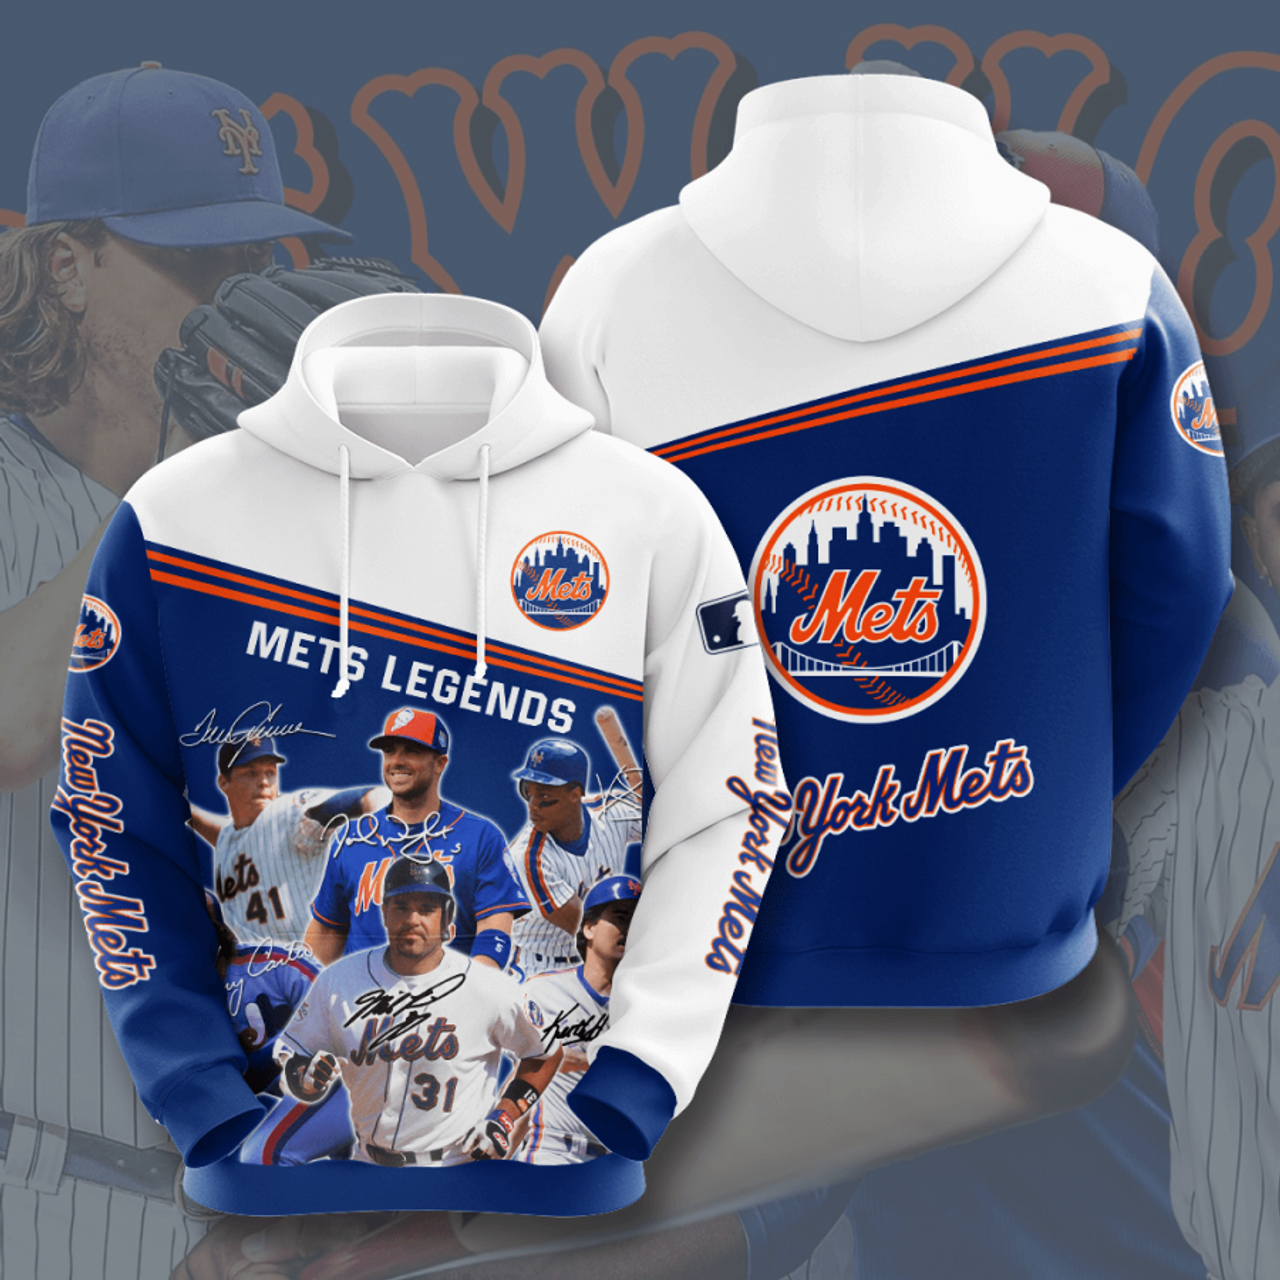 **(OFFICIAL-M.L.B. NEW-YORK-METS-TEAM-PULLOVER-HOODIES & NEW-YORK-METS-LEGENDS/CUSTOM-3D-GRAPHIC-PRINTED-ALL-OVER-DOUBLE-SIDED-DESIGN/OFFICIAL-METS-TEAM-COLORS & CLASSIC-OFFICIAL-METS-3D-LOGOS/WARM-PREMIUM-PULLOVER-GAME-DAY-HOODIES)**